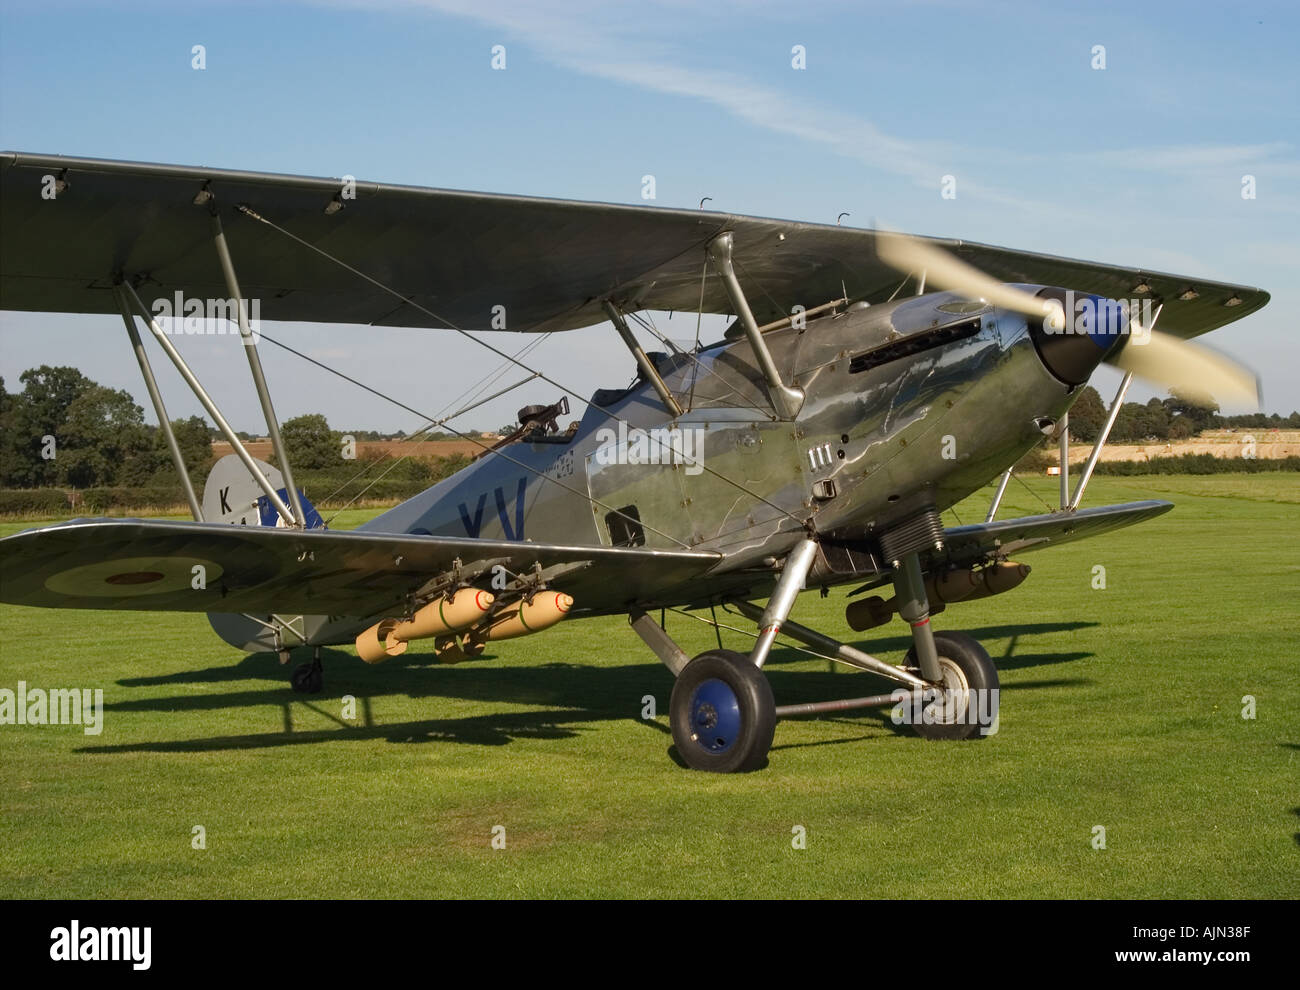 Hawker Hind Bi Plane Running up prior to take off Shuttleworth Collection Old Warden - Stock Image